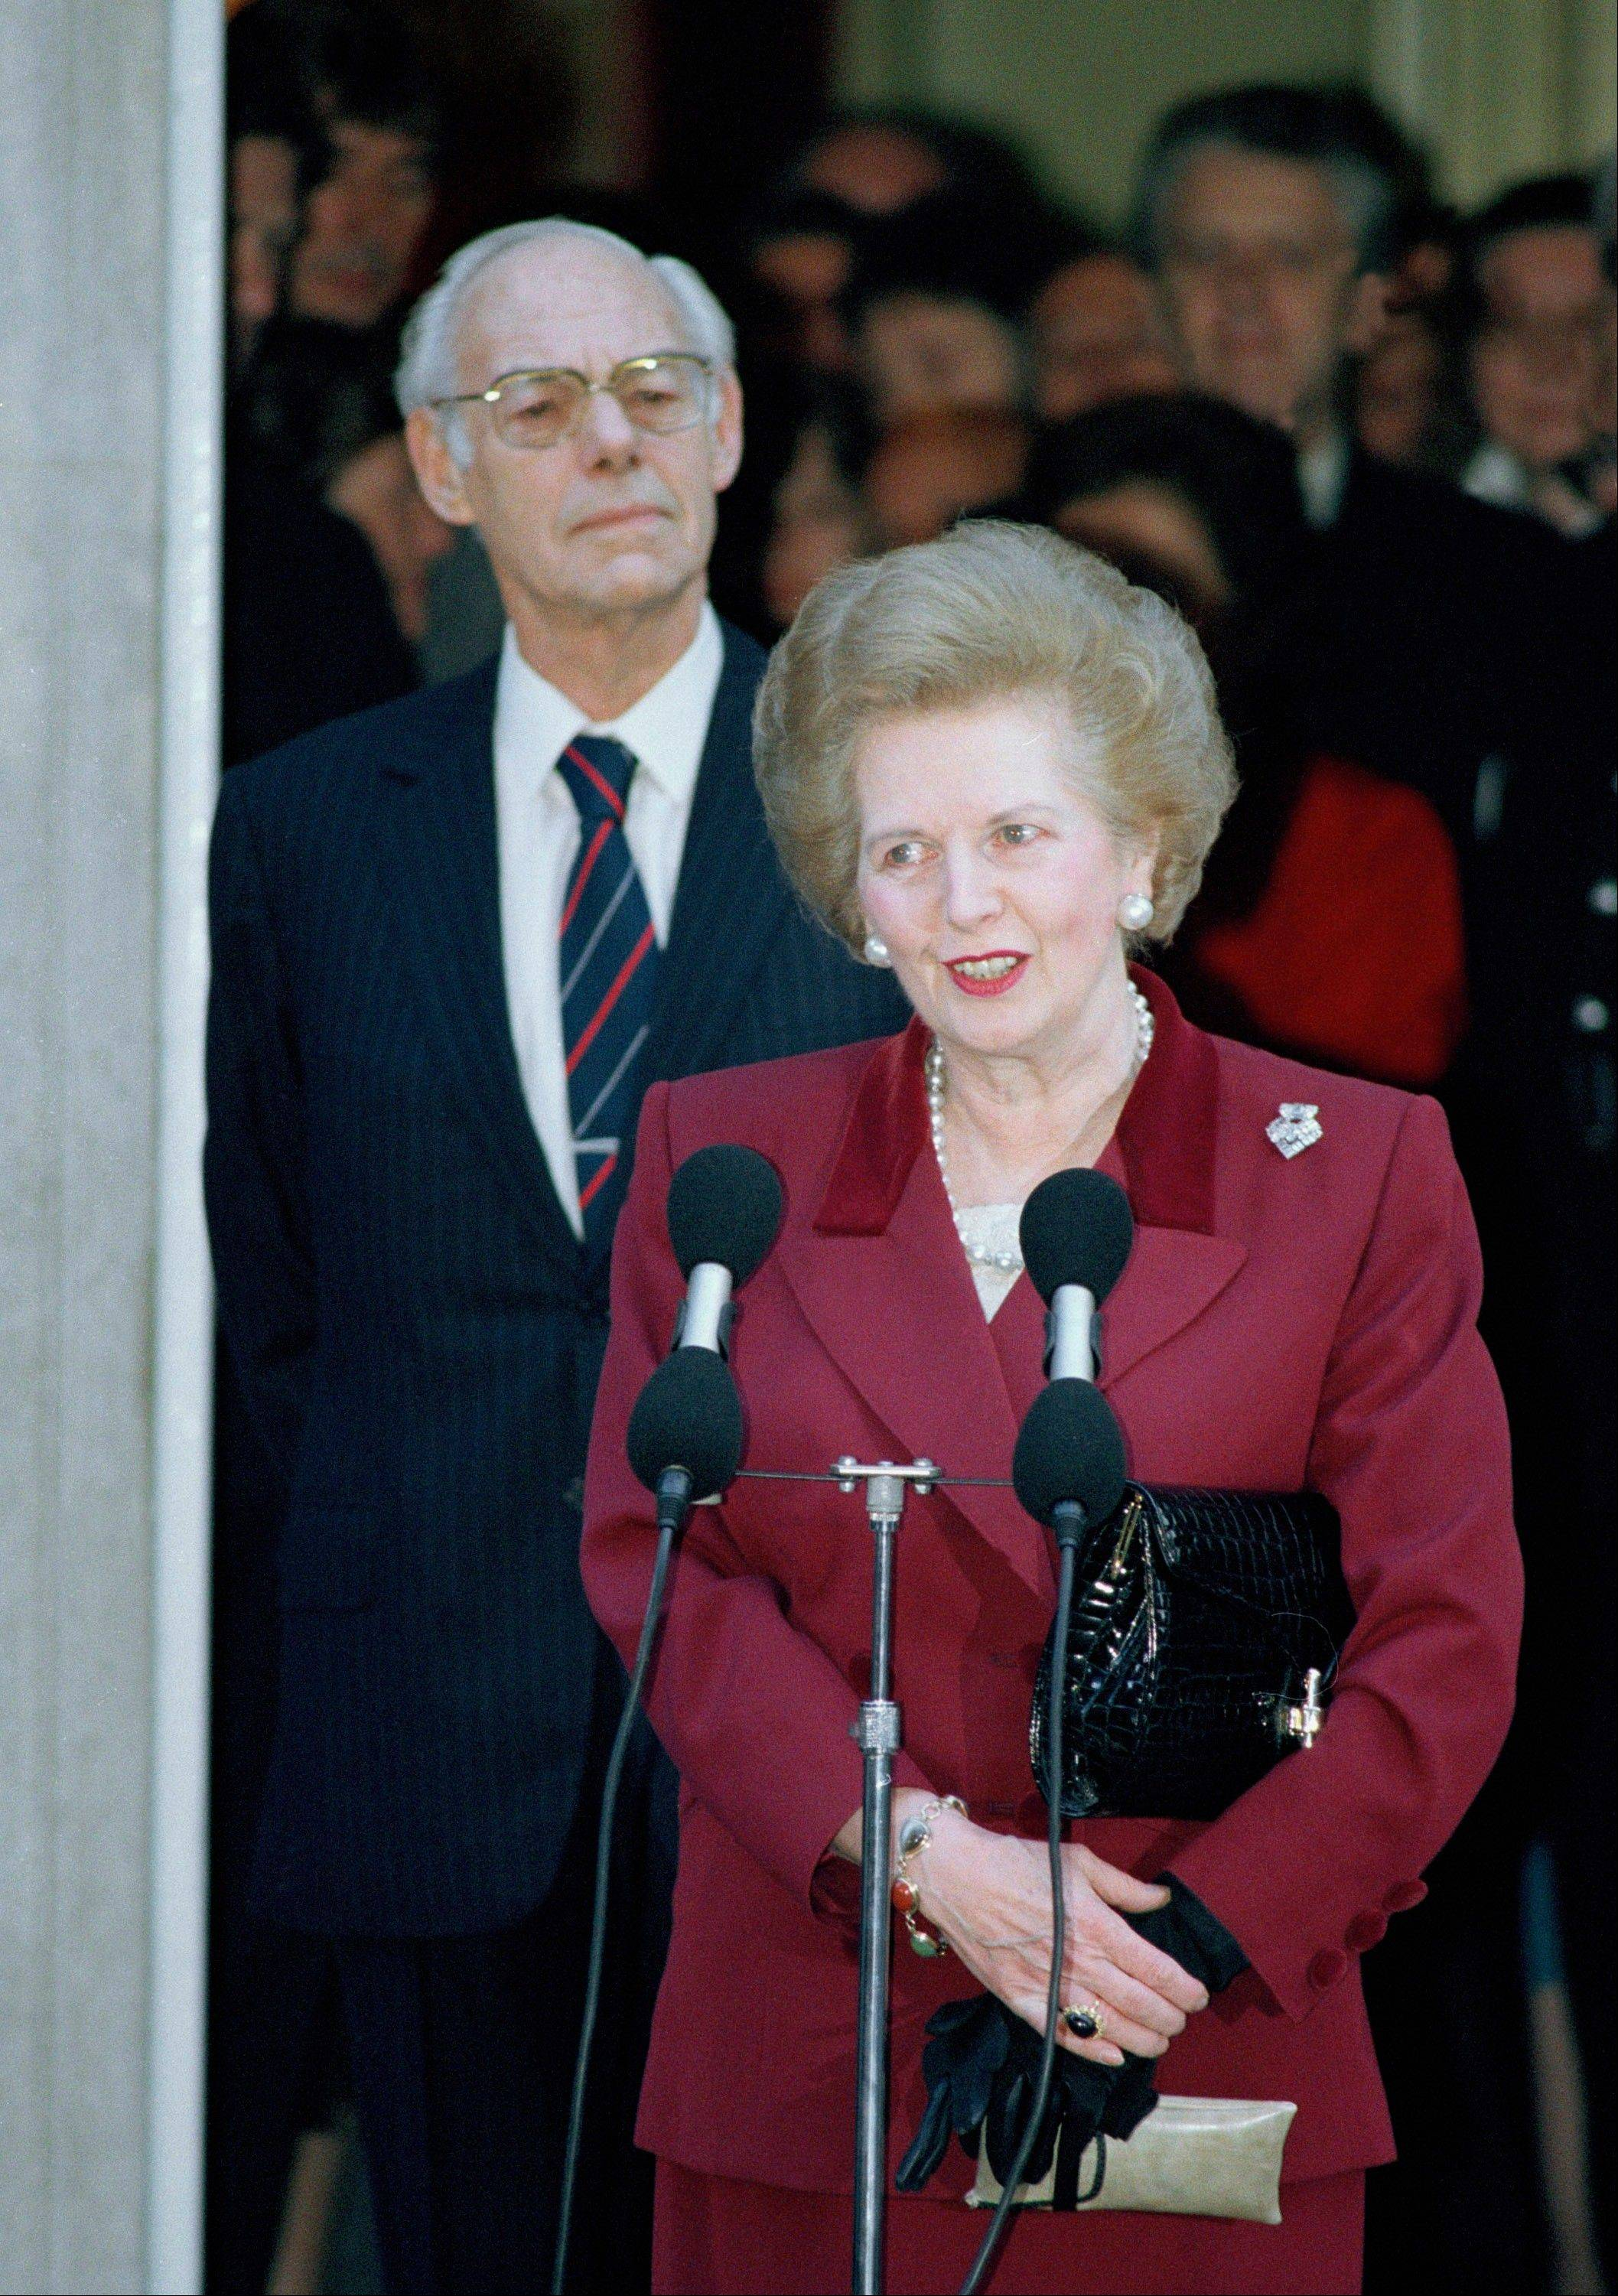 The enduring image of Margaret Thatcher's departure from office is the tearful face captured by photographers in 1990 as she left the prime minister's official residence at 10 Downing Street for the last time after 11 years as prime minister.